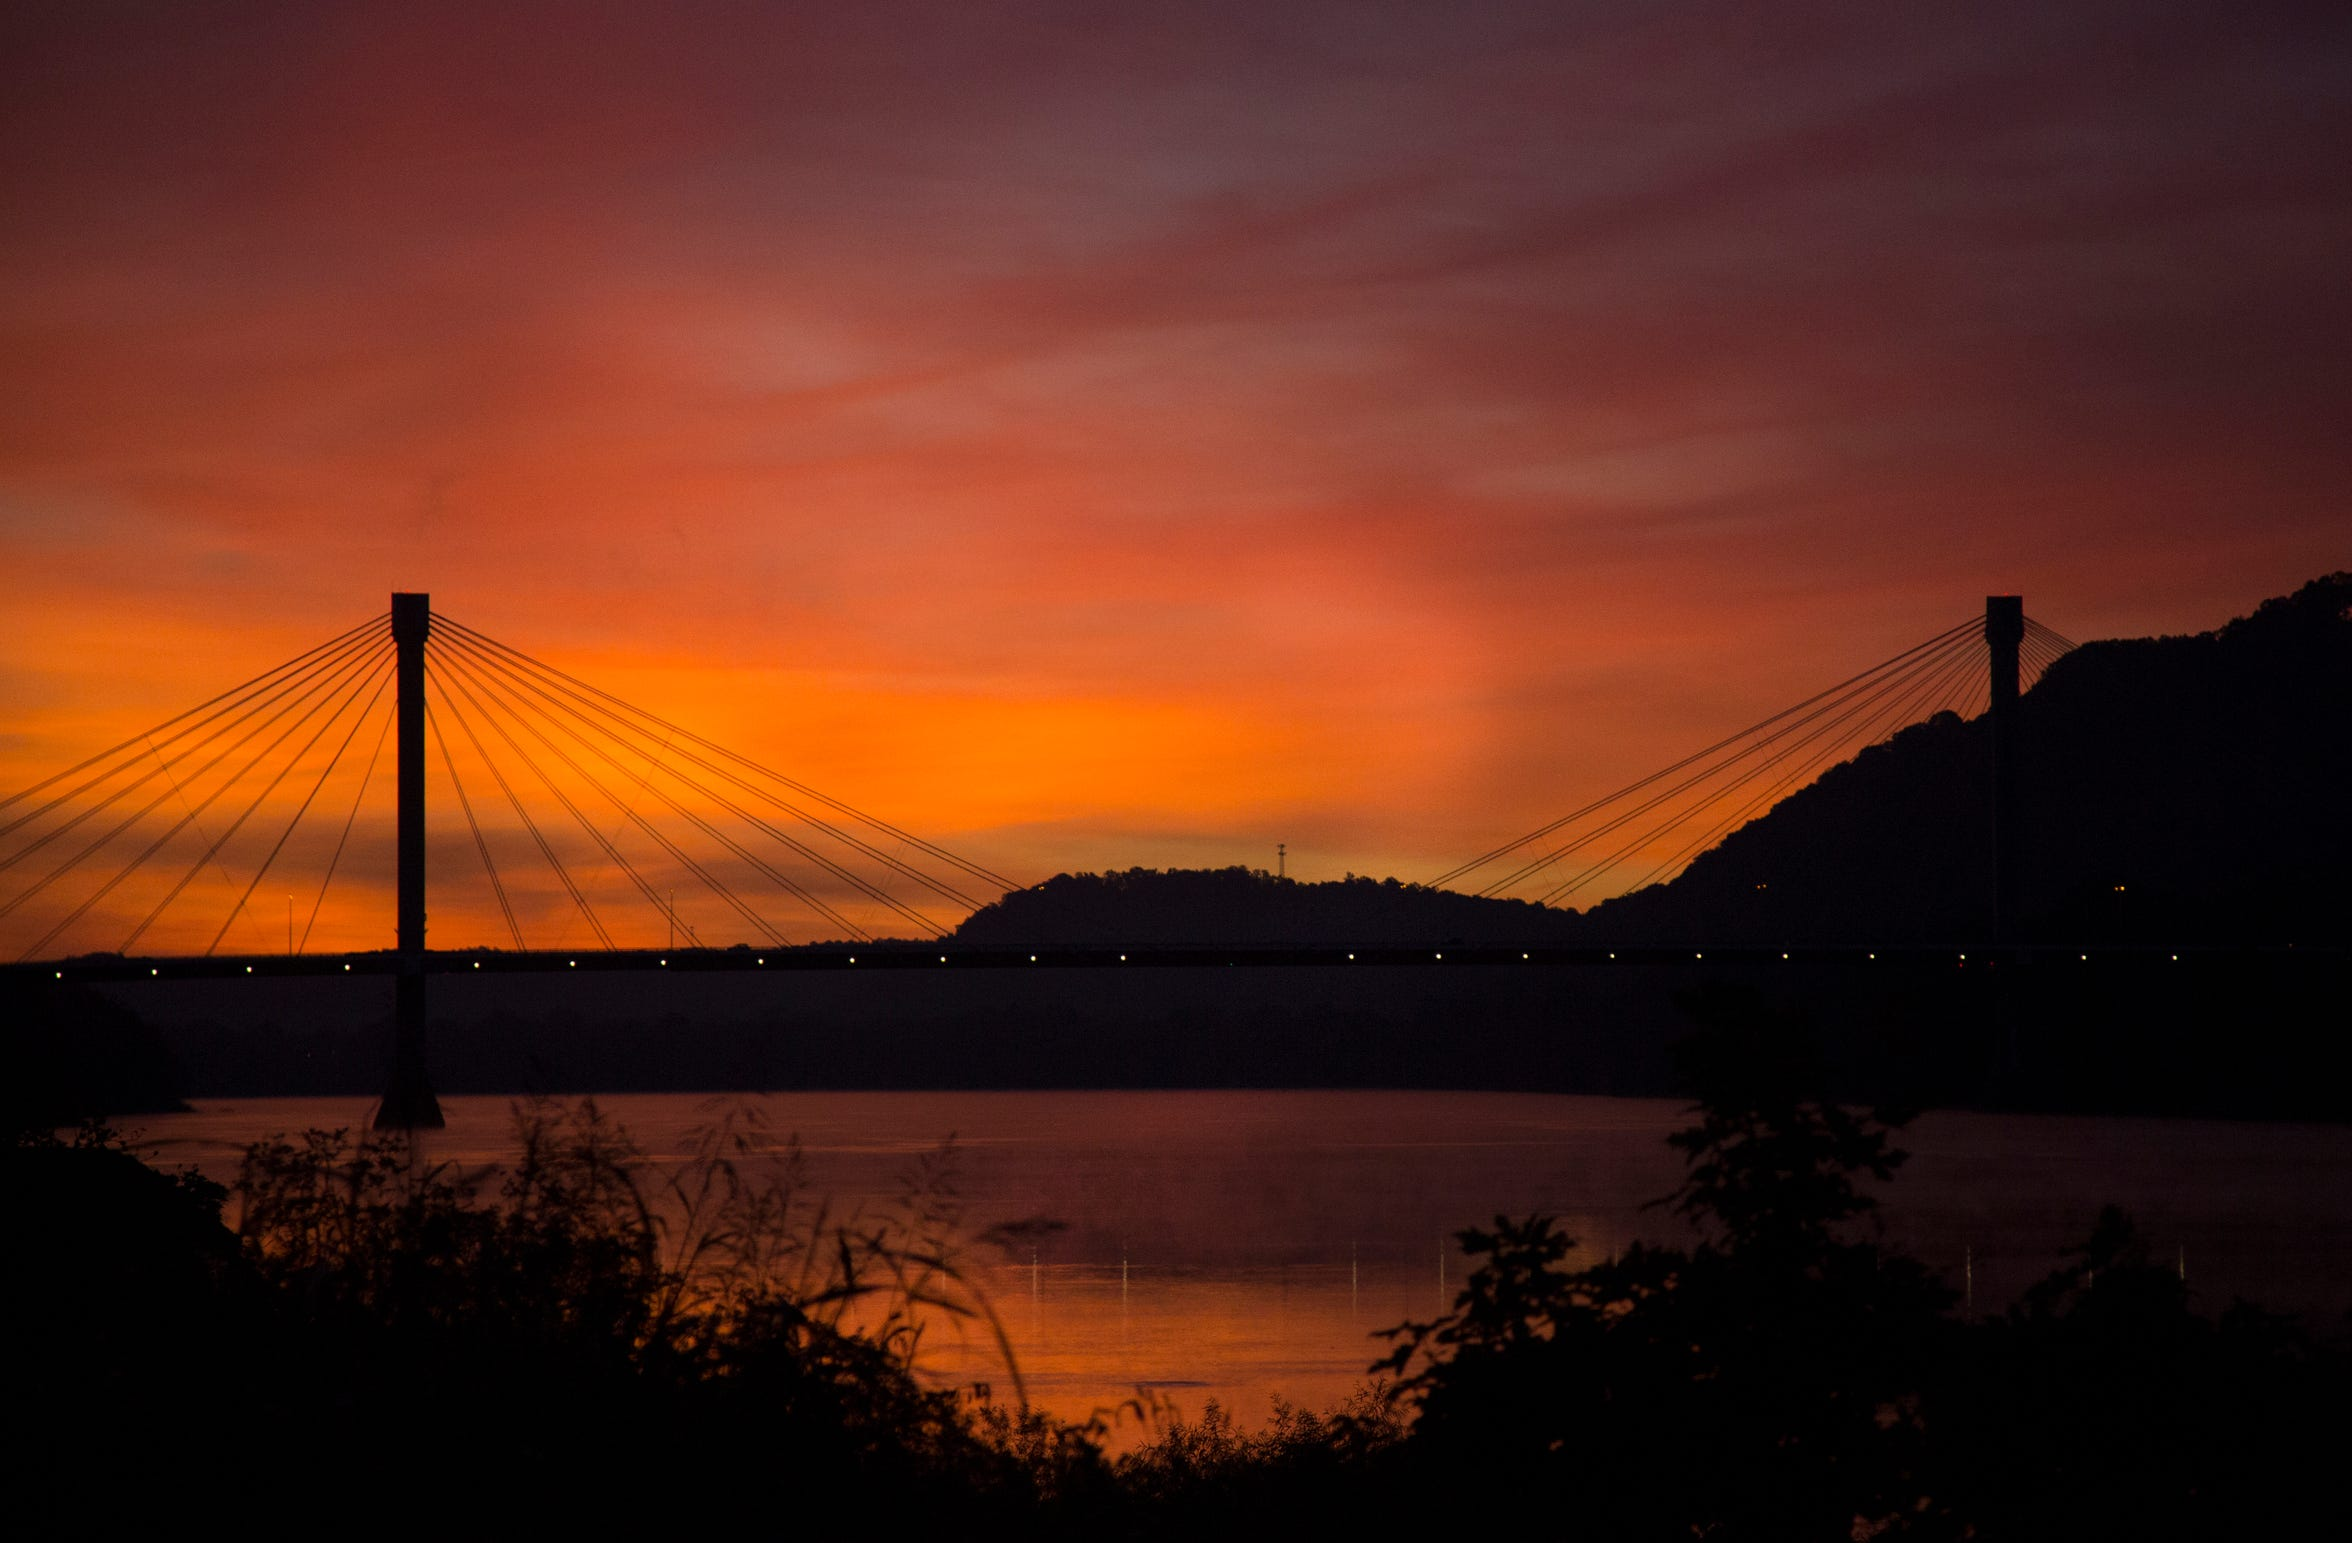 A sunrise silhouettes the US Grant Bridge in Portsmouth, Ohio. Portsmouth sits at the intersection of the Ohio River (pictured) and the Scioto River.